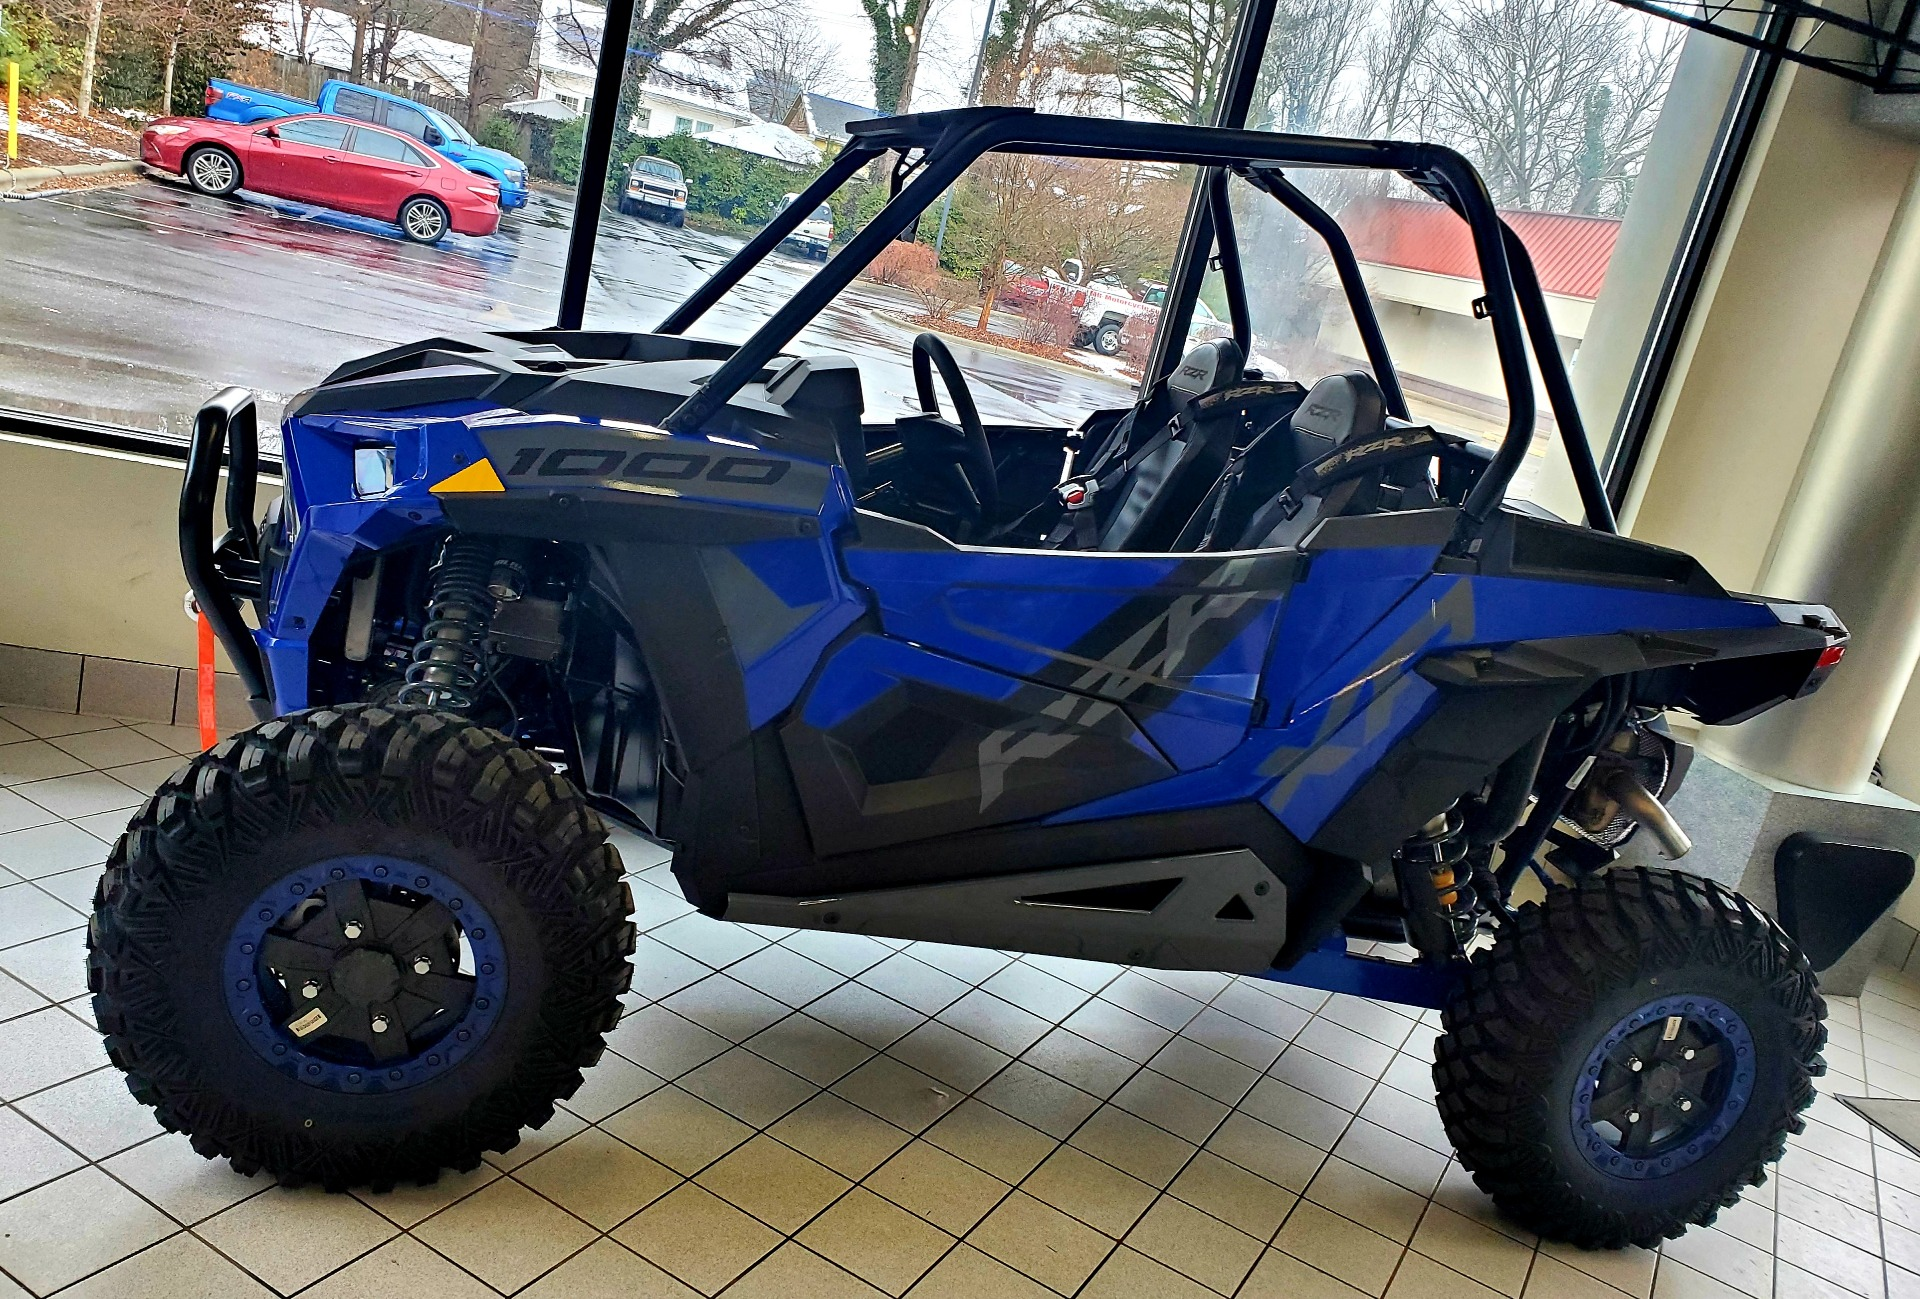 2021 Polaris RZR XP 1000 Trails & Rocks in Asheville, North Carolina - Photo 1